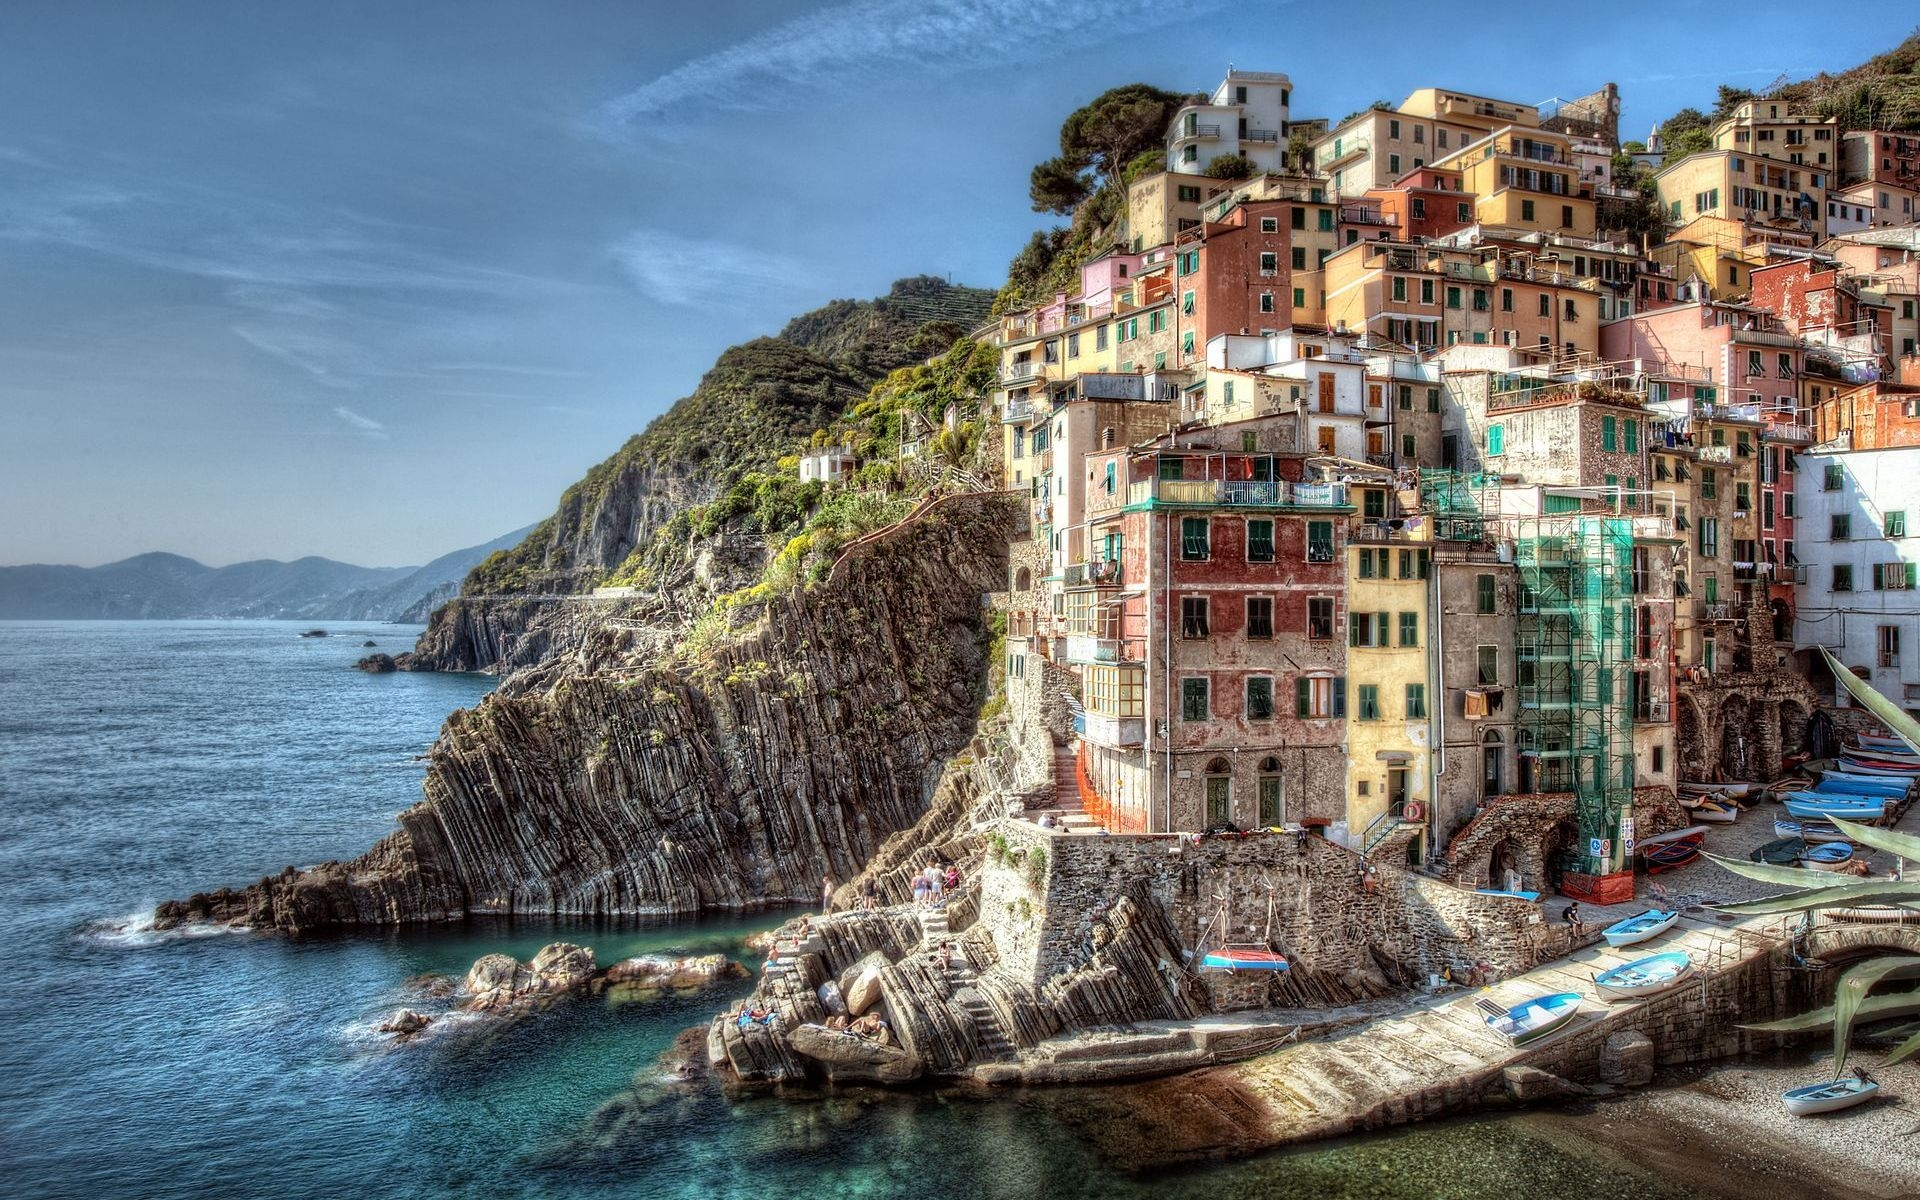 Riomaggiore Italy wallpapers and images   wallpapers 1920x1200